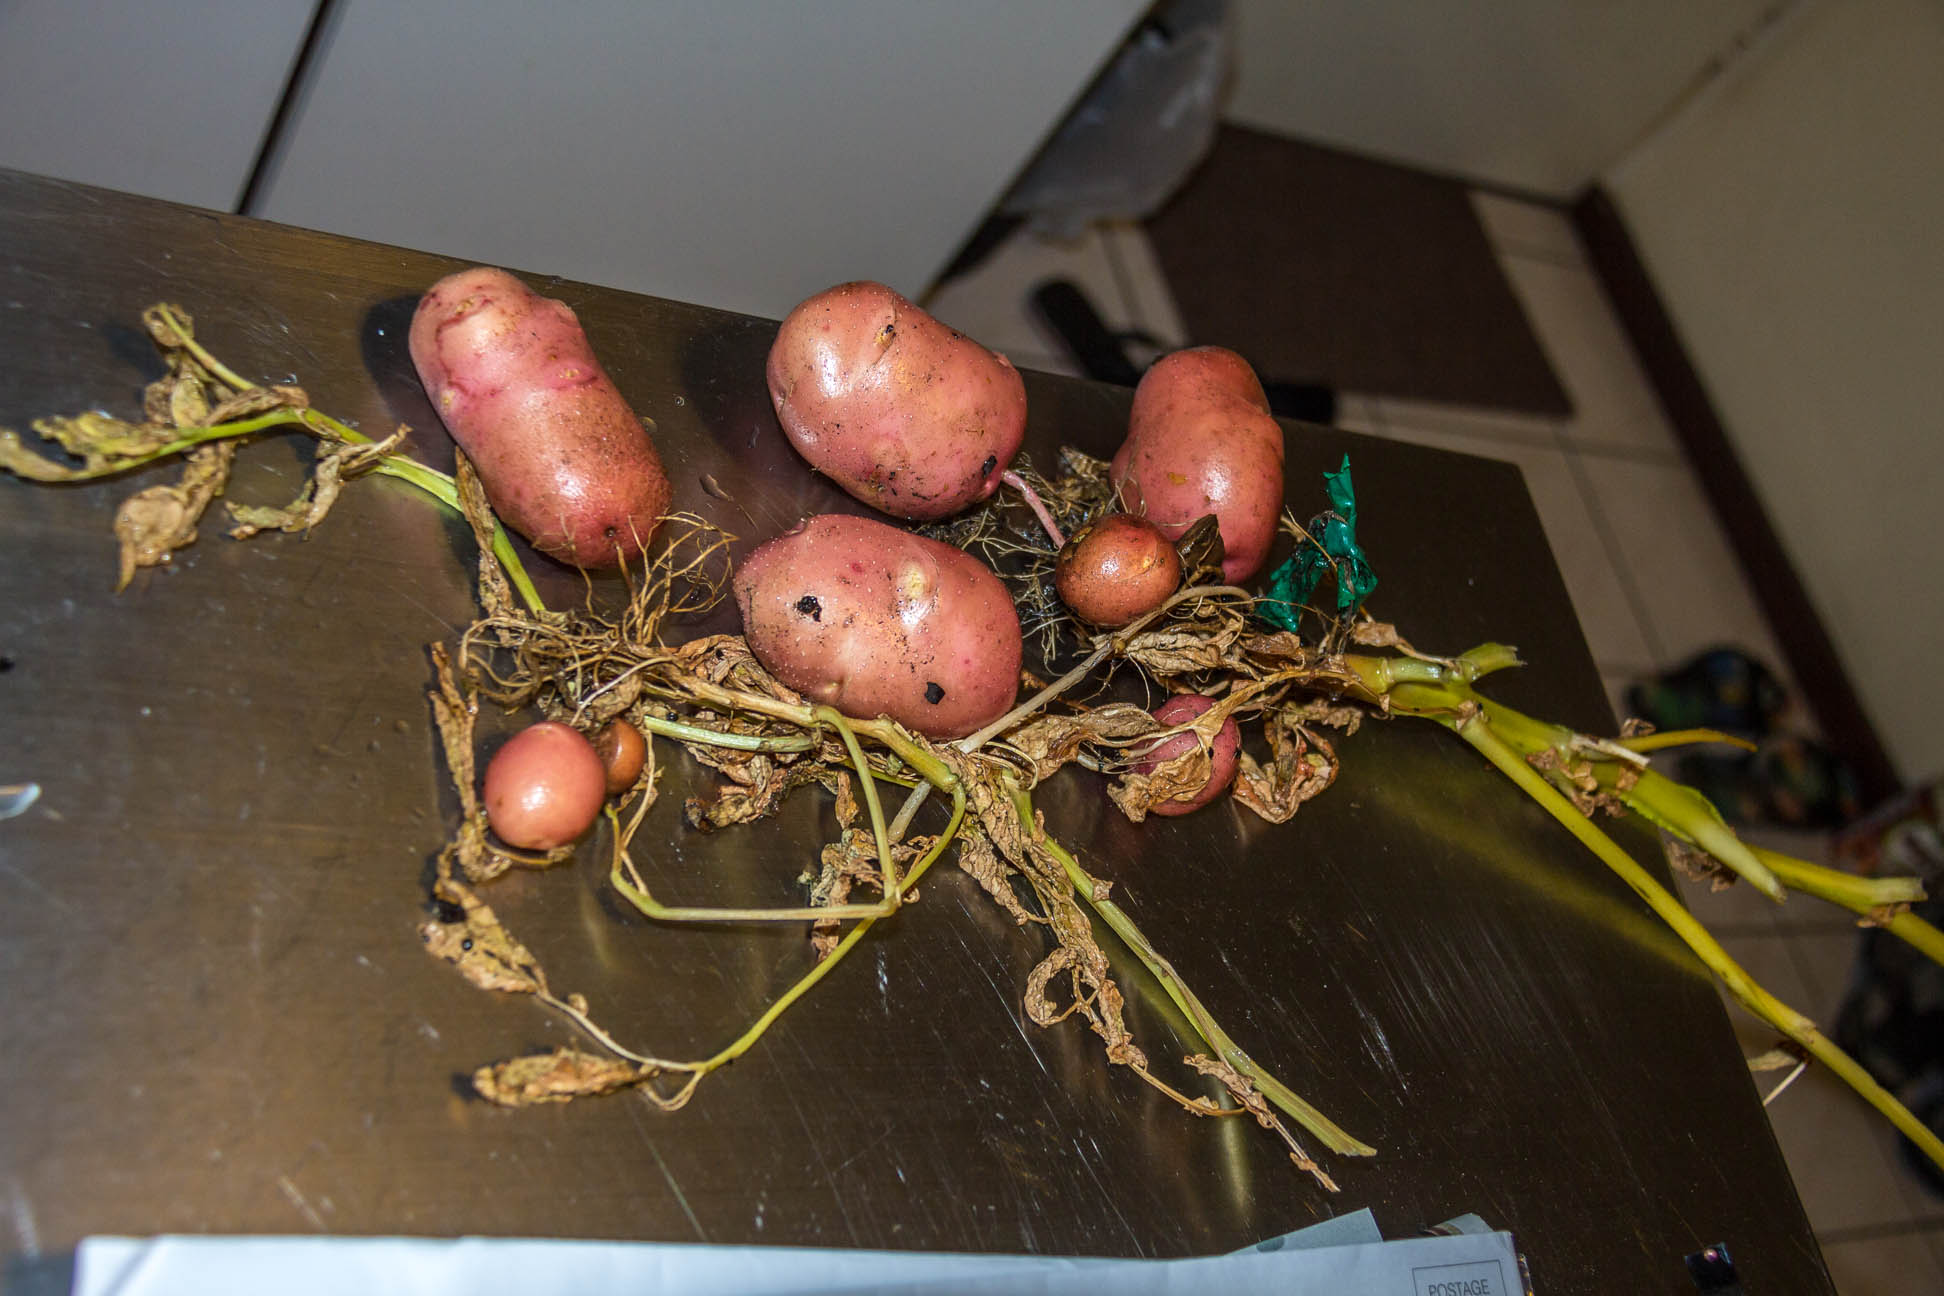 Pull up potato plant with varying sizes potato spuds